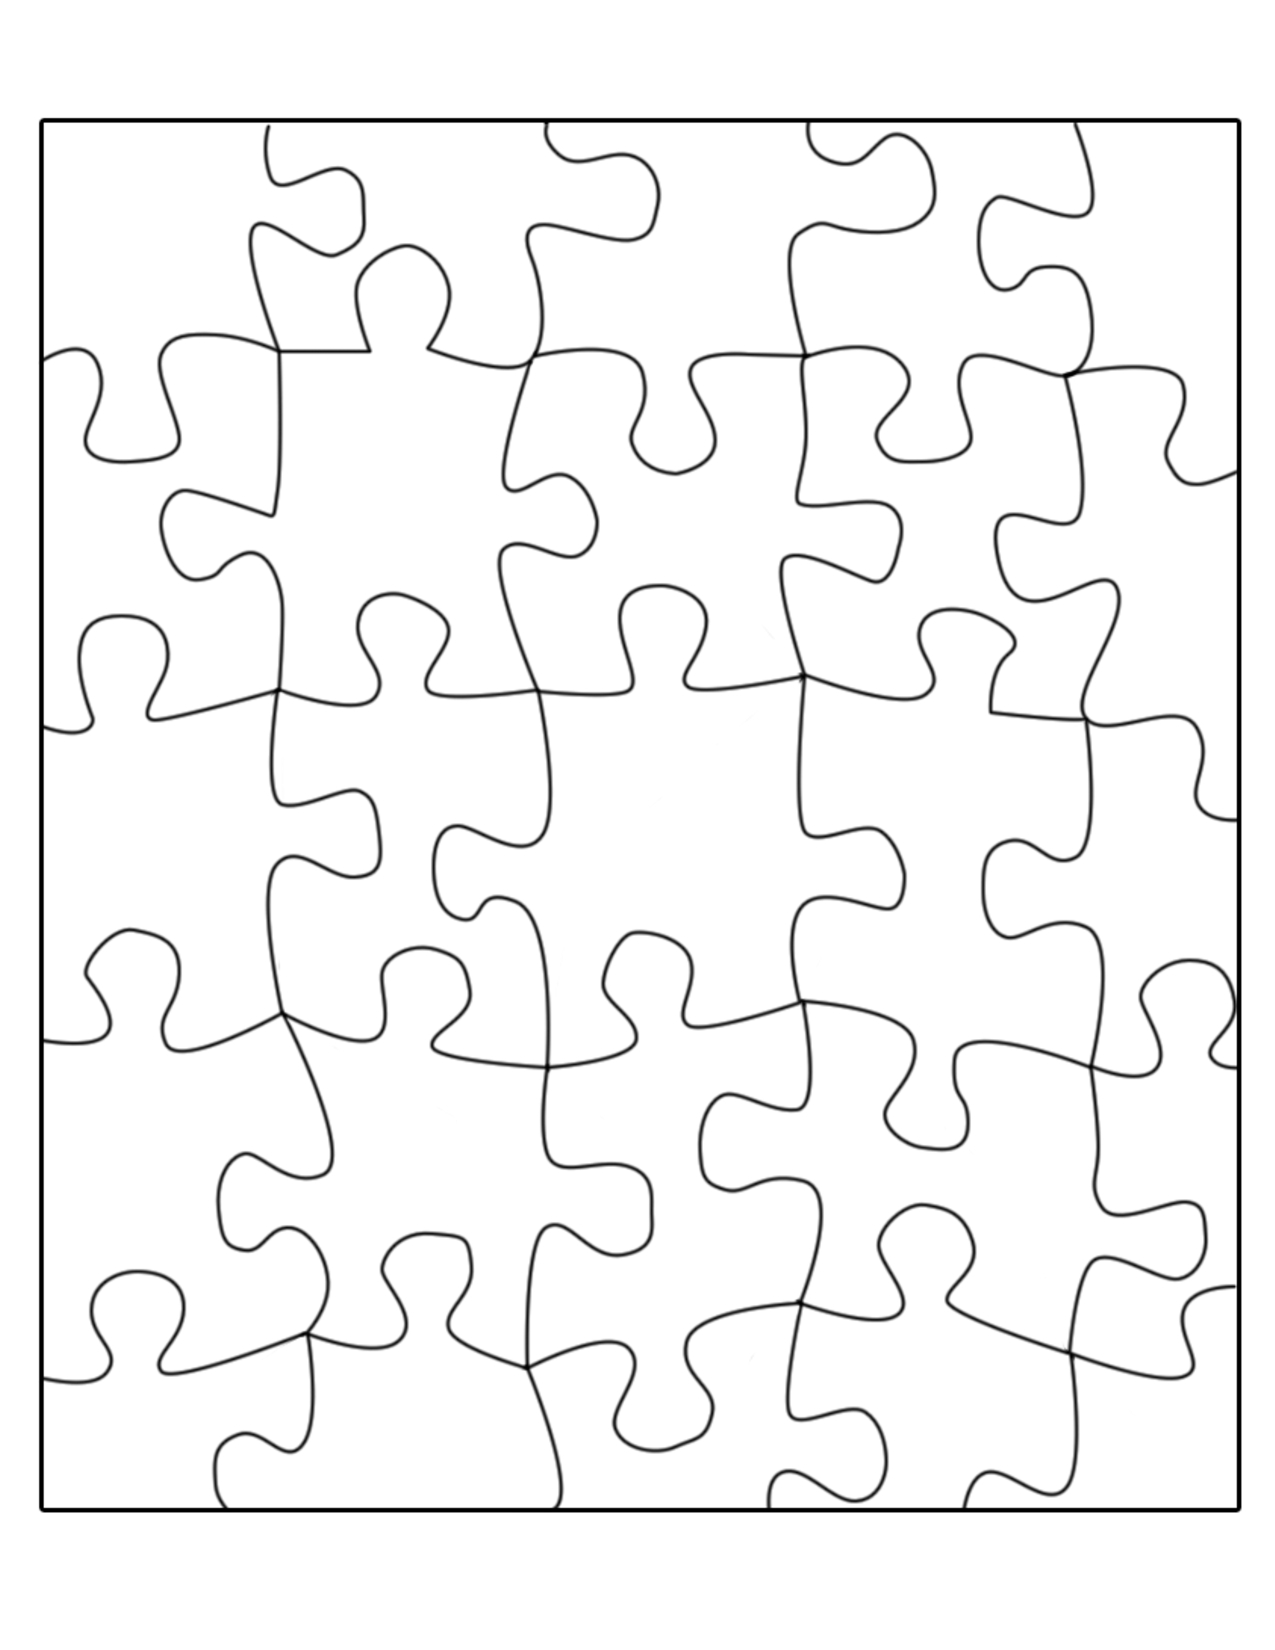 Free Puzzle Template, Download Free Clip Art, Free Clip Art On - Printable Jigsaw Puzzle Shapes